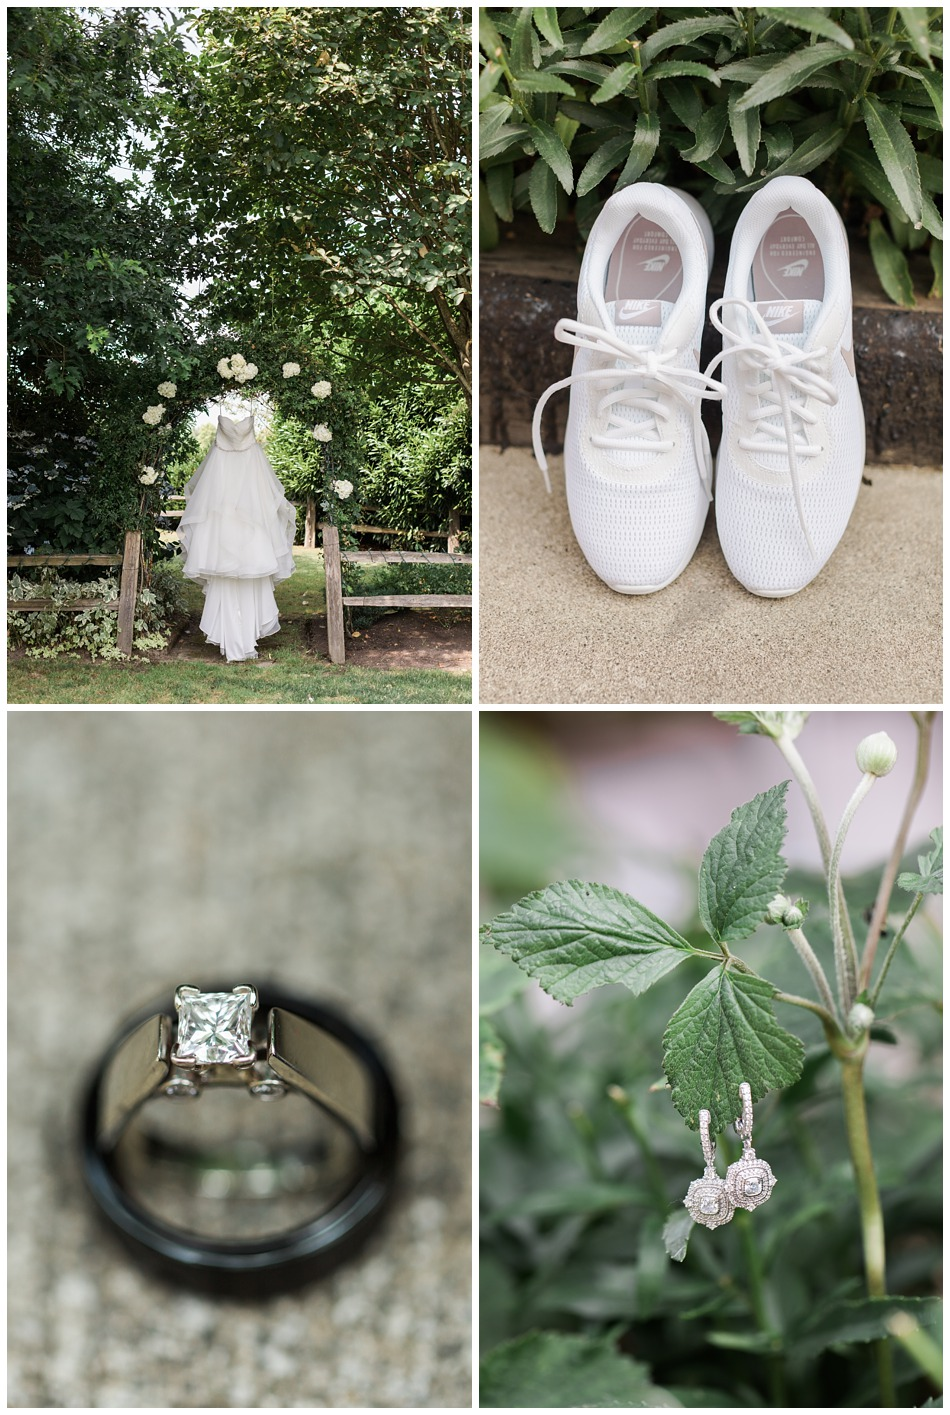 Photo of wedding dress and accessories for a rustic barn wedding at Craven Farms in Snohomish, a wedding venue near Seattle. | Joanna Monger Photography